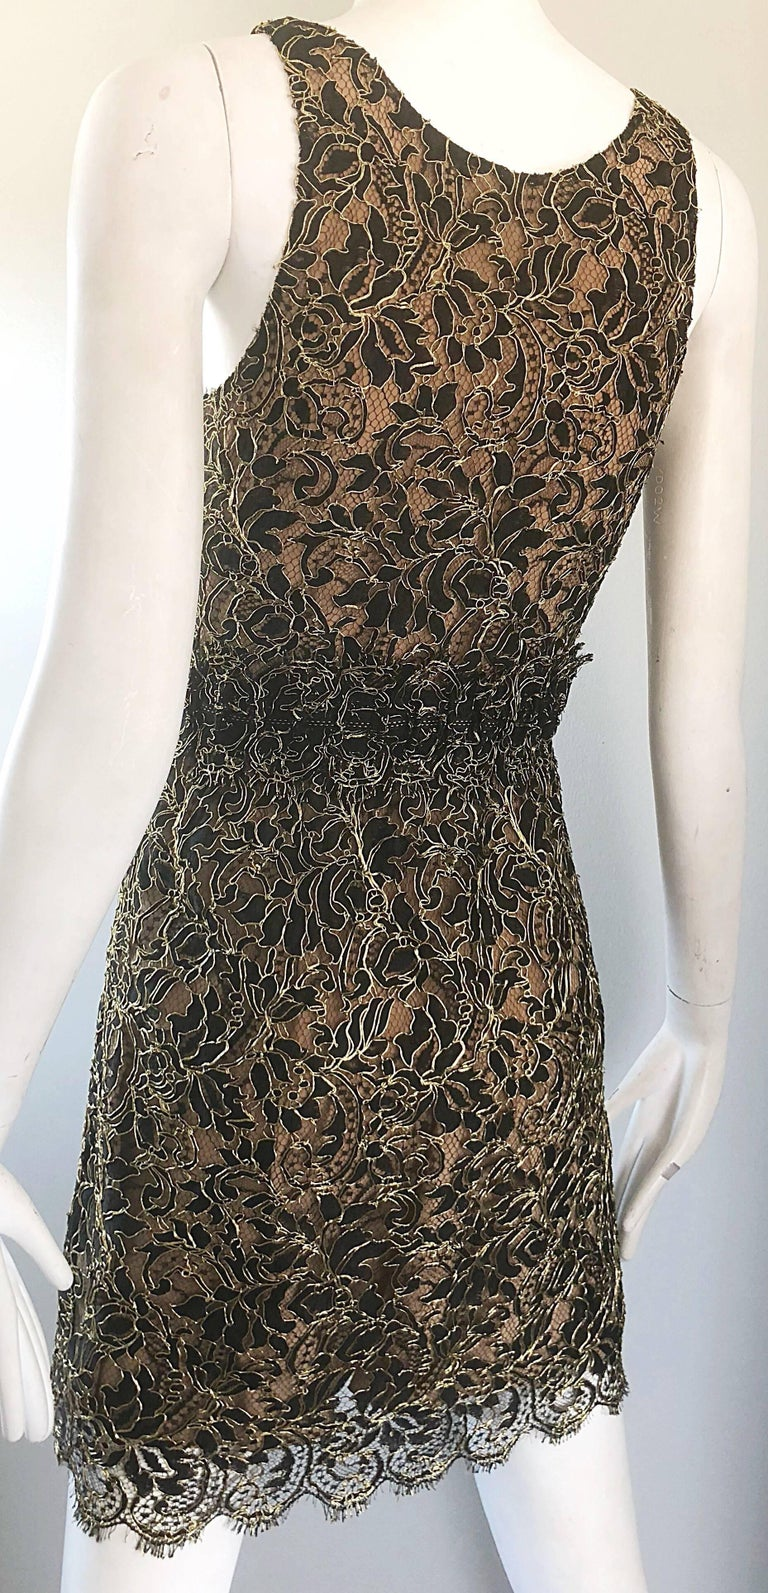 Balenciaga by Nicolas Ghesquiere Black + Gold + Nude Silk Chiffon Lace Dress For Sale 3